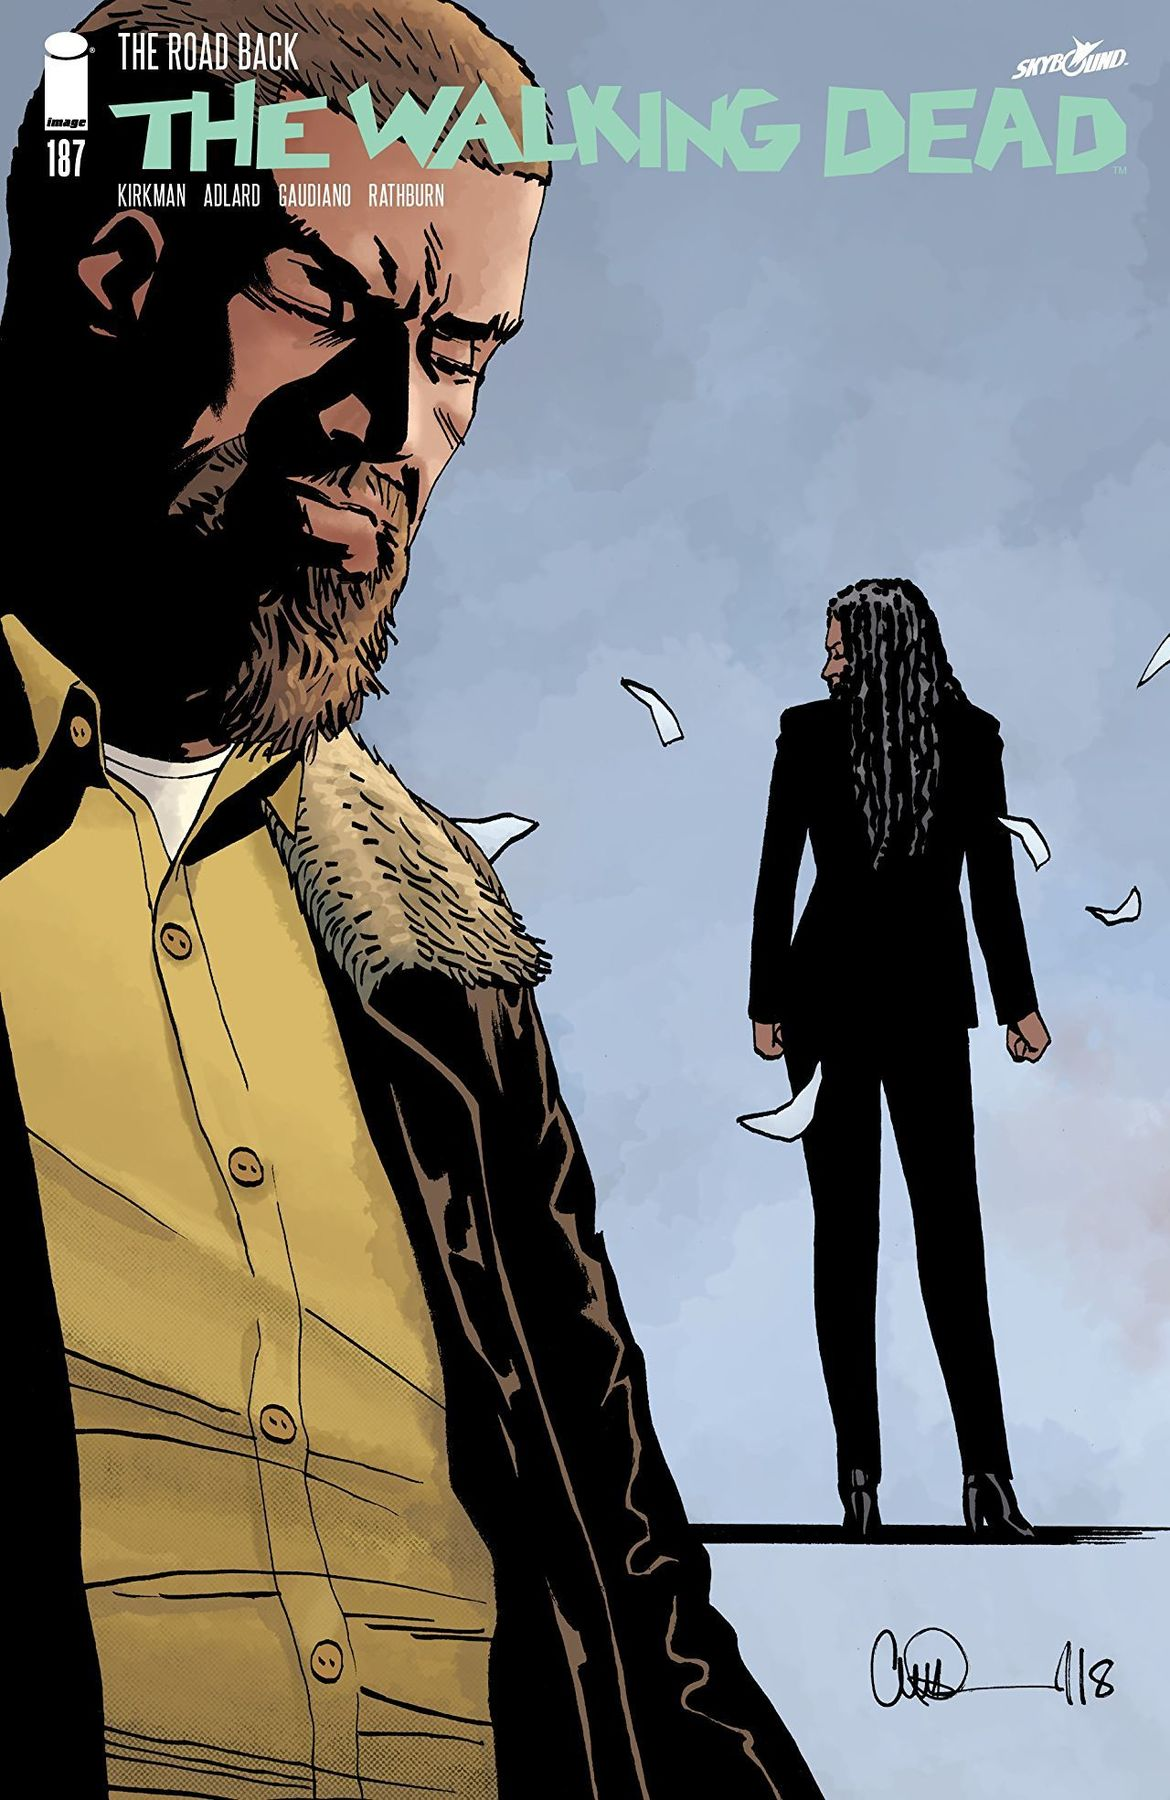 The Walking Dead Issue 187 Robert Kirkman